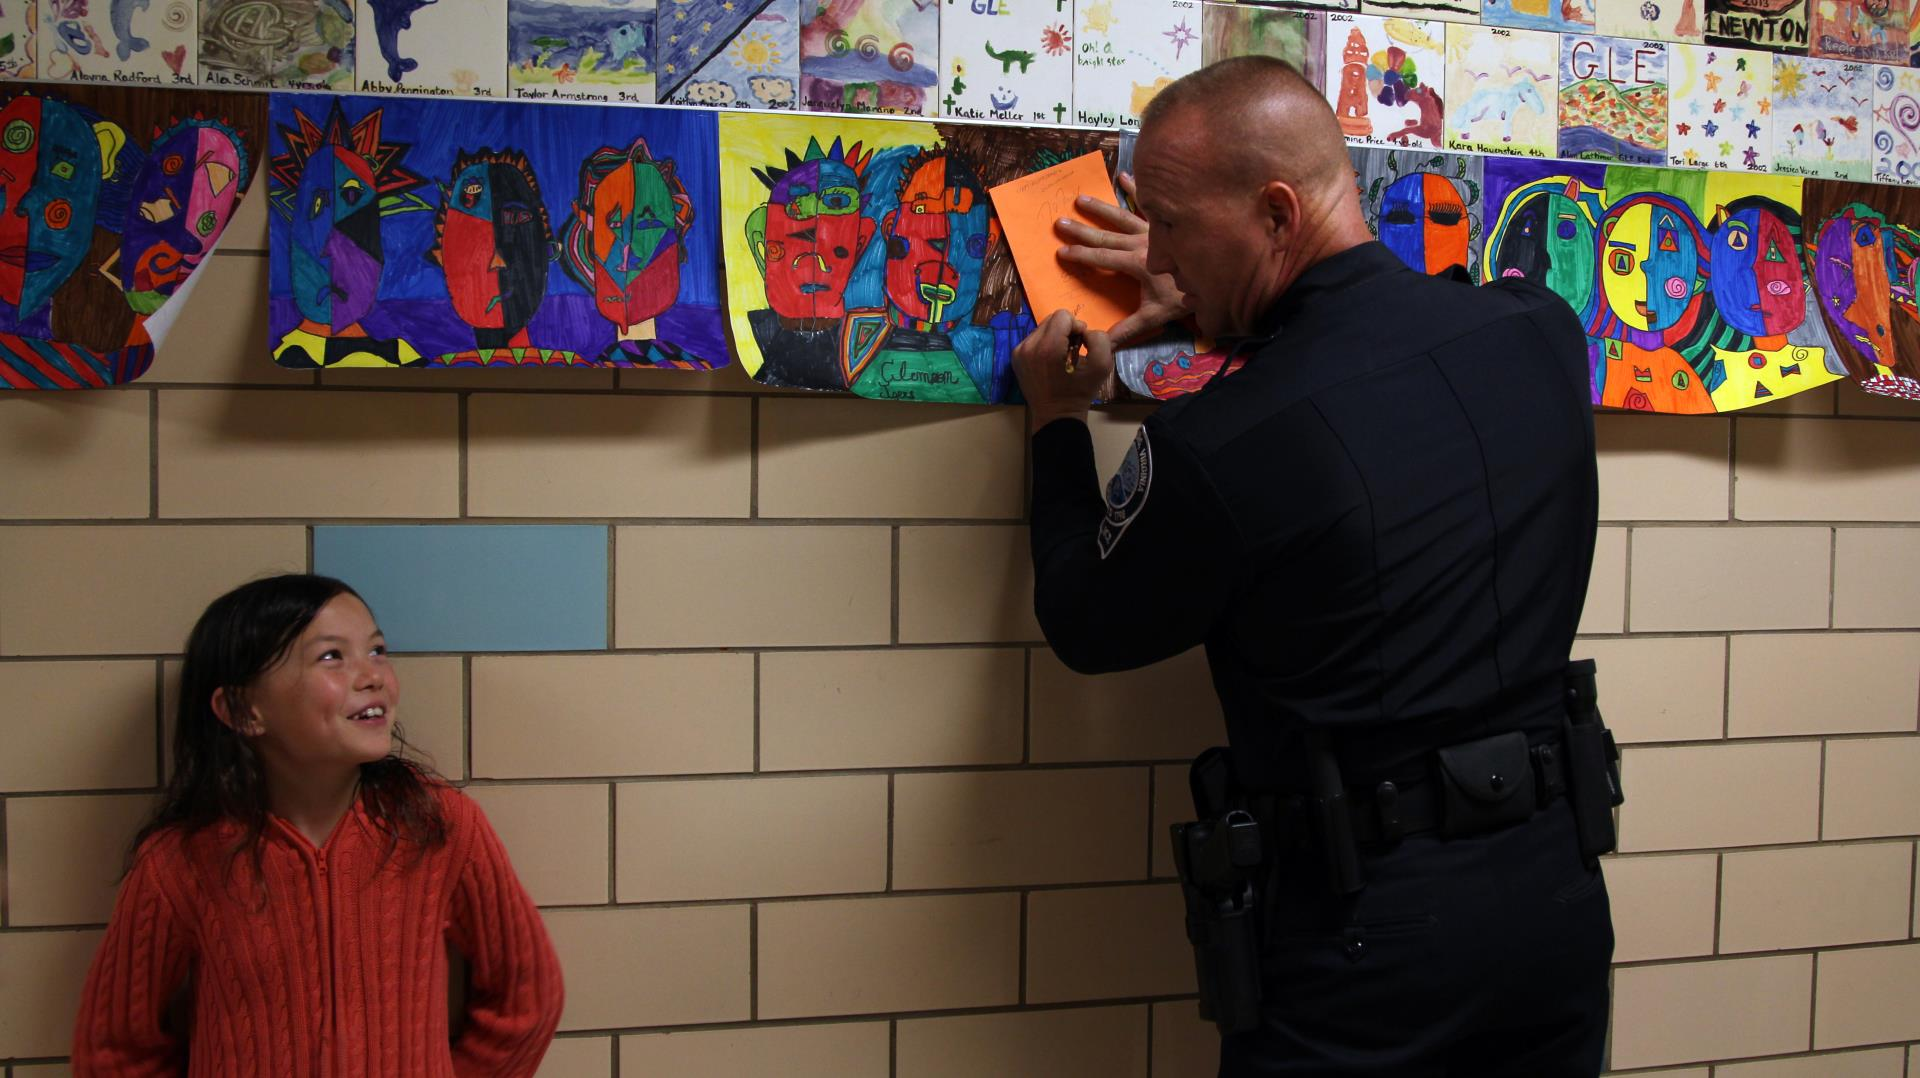 Student at Gilbert Linkous Elementary looking up at Officer Nathan O'Dell